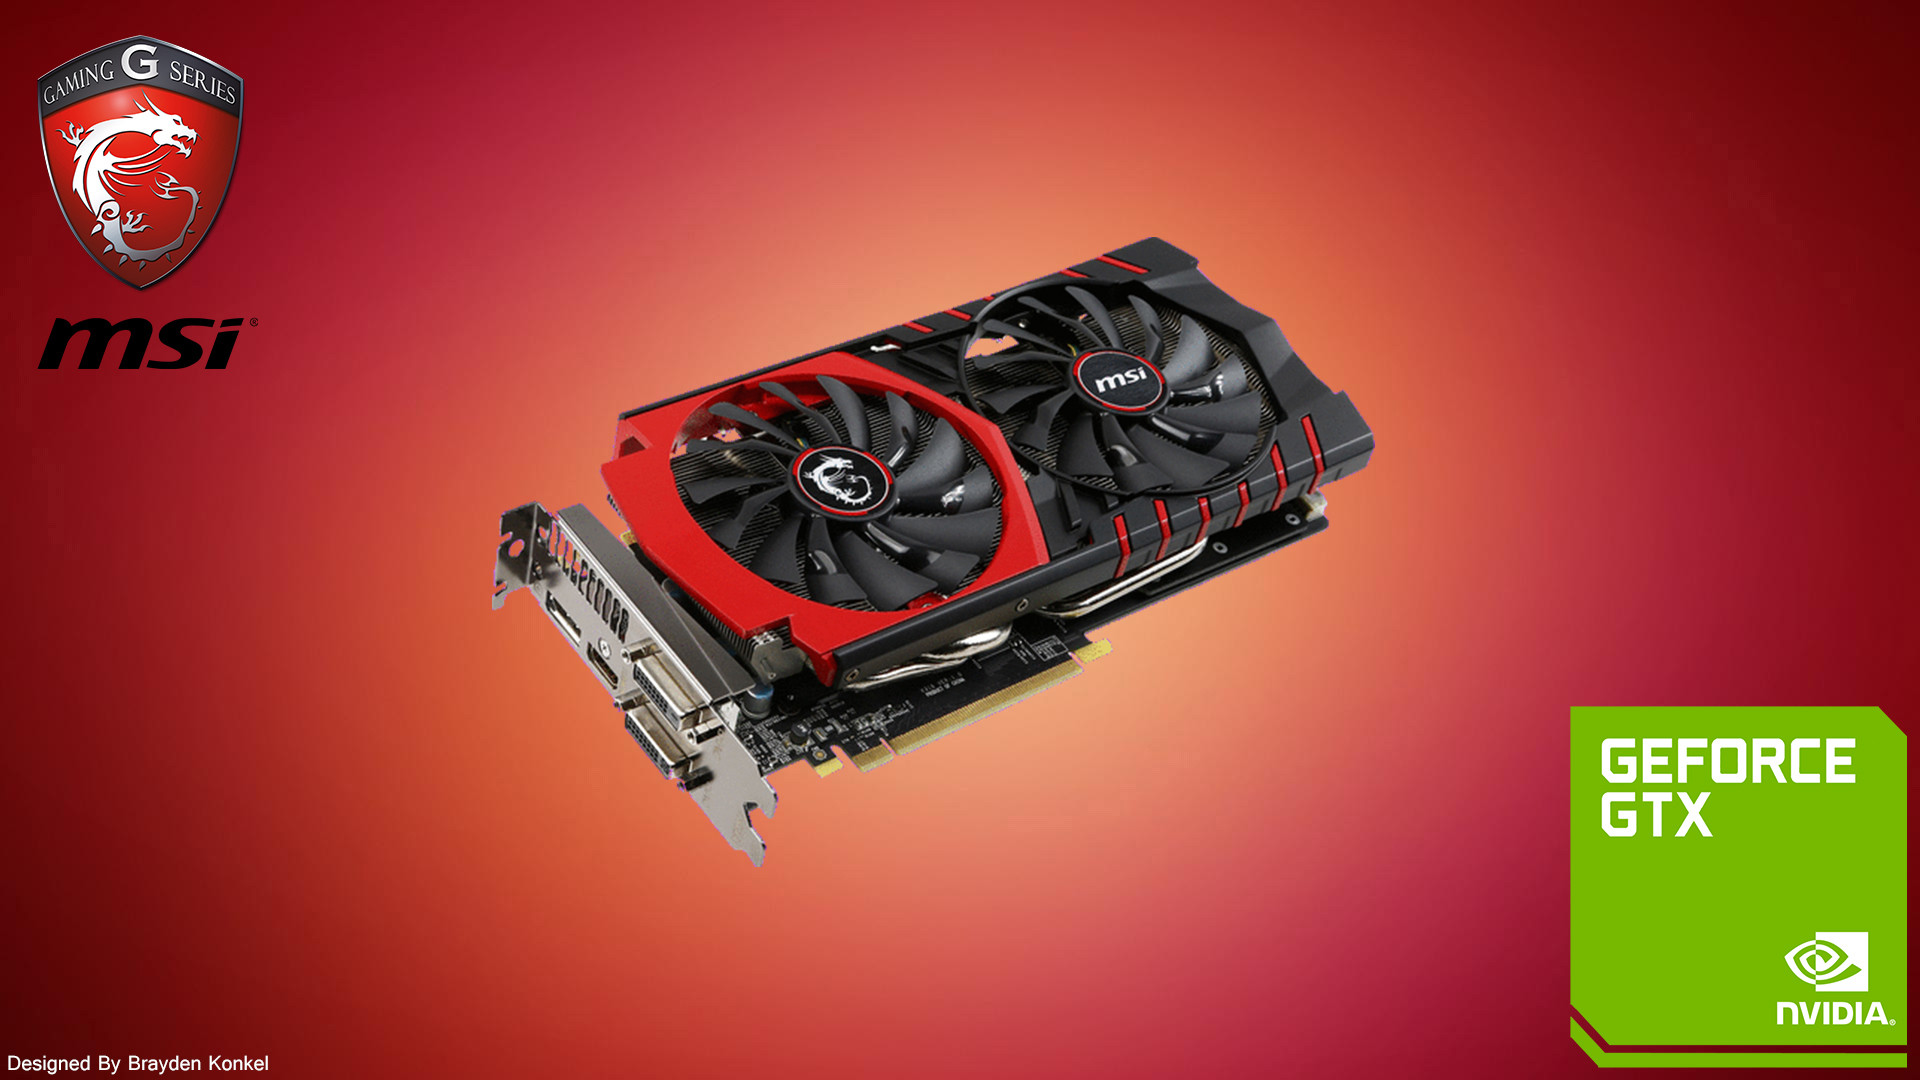 … TheCaptainFirefly MSI GTX 980/970/960 GAMING Wallpaper by  TheCaptainFirefly